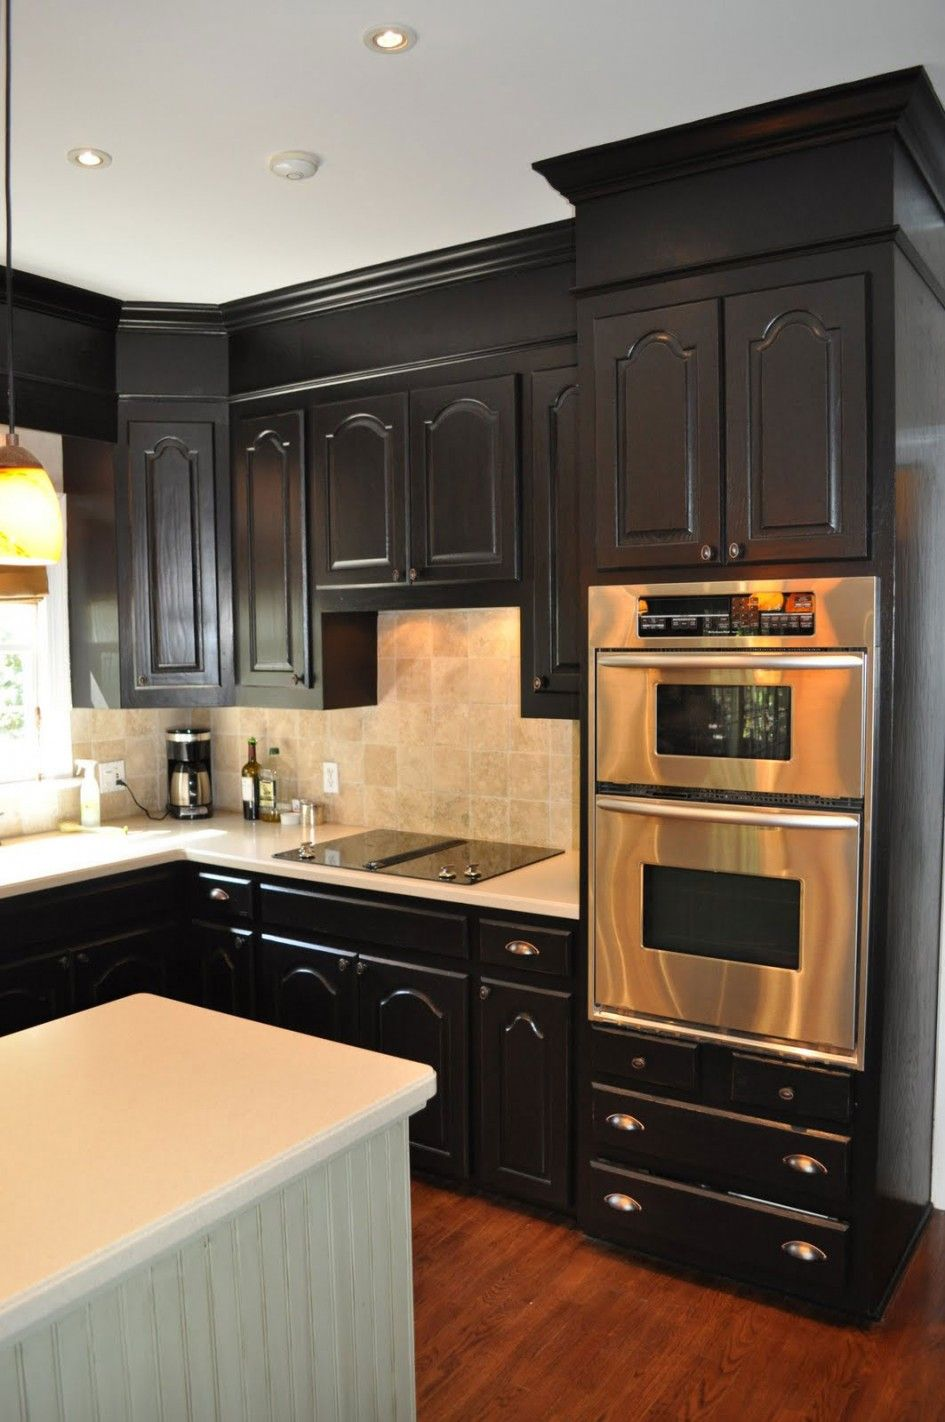 Kitchen cabinets corner oven - Enchanting Built In Corner Pantry Cabinet With Raised Panel Cathedral Cabinet Doors In Matte Black Paint